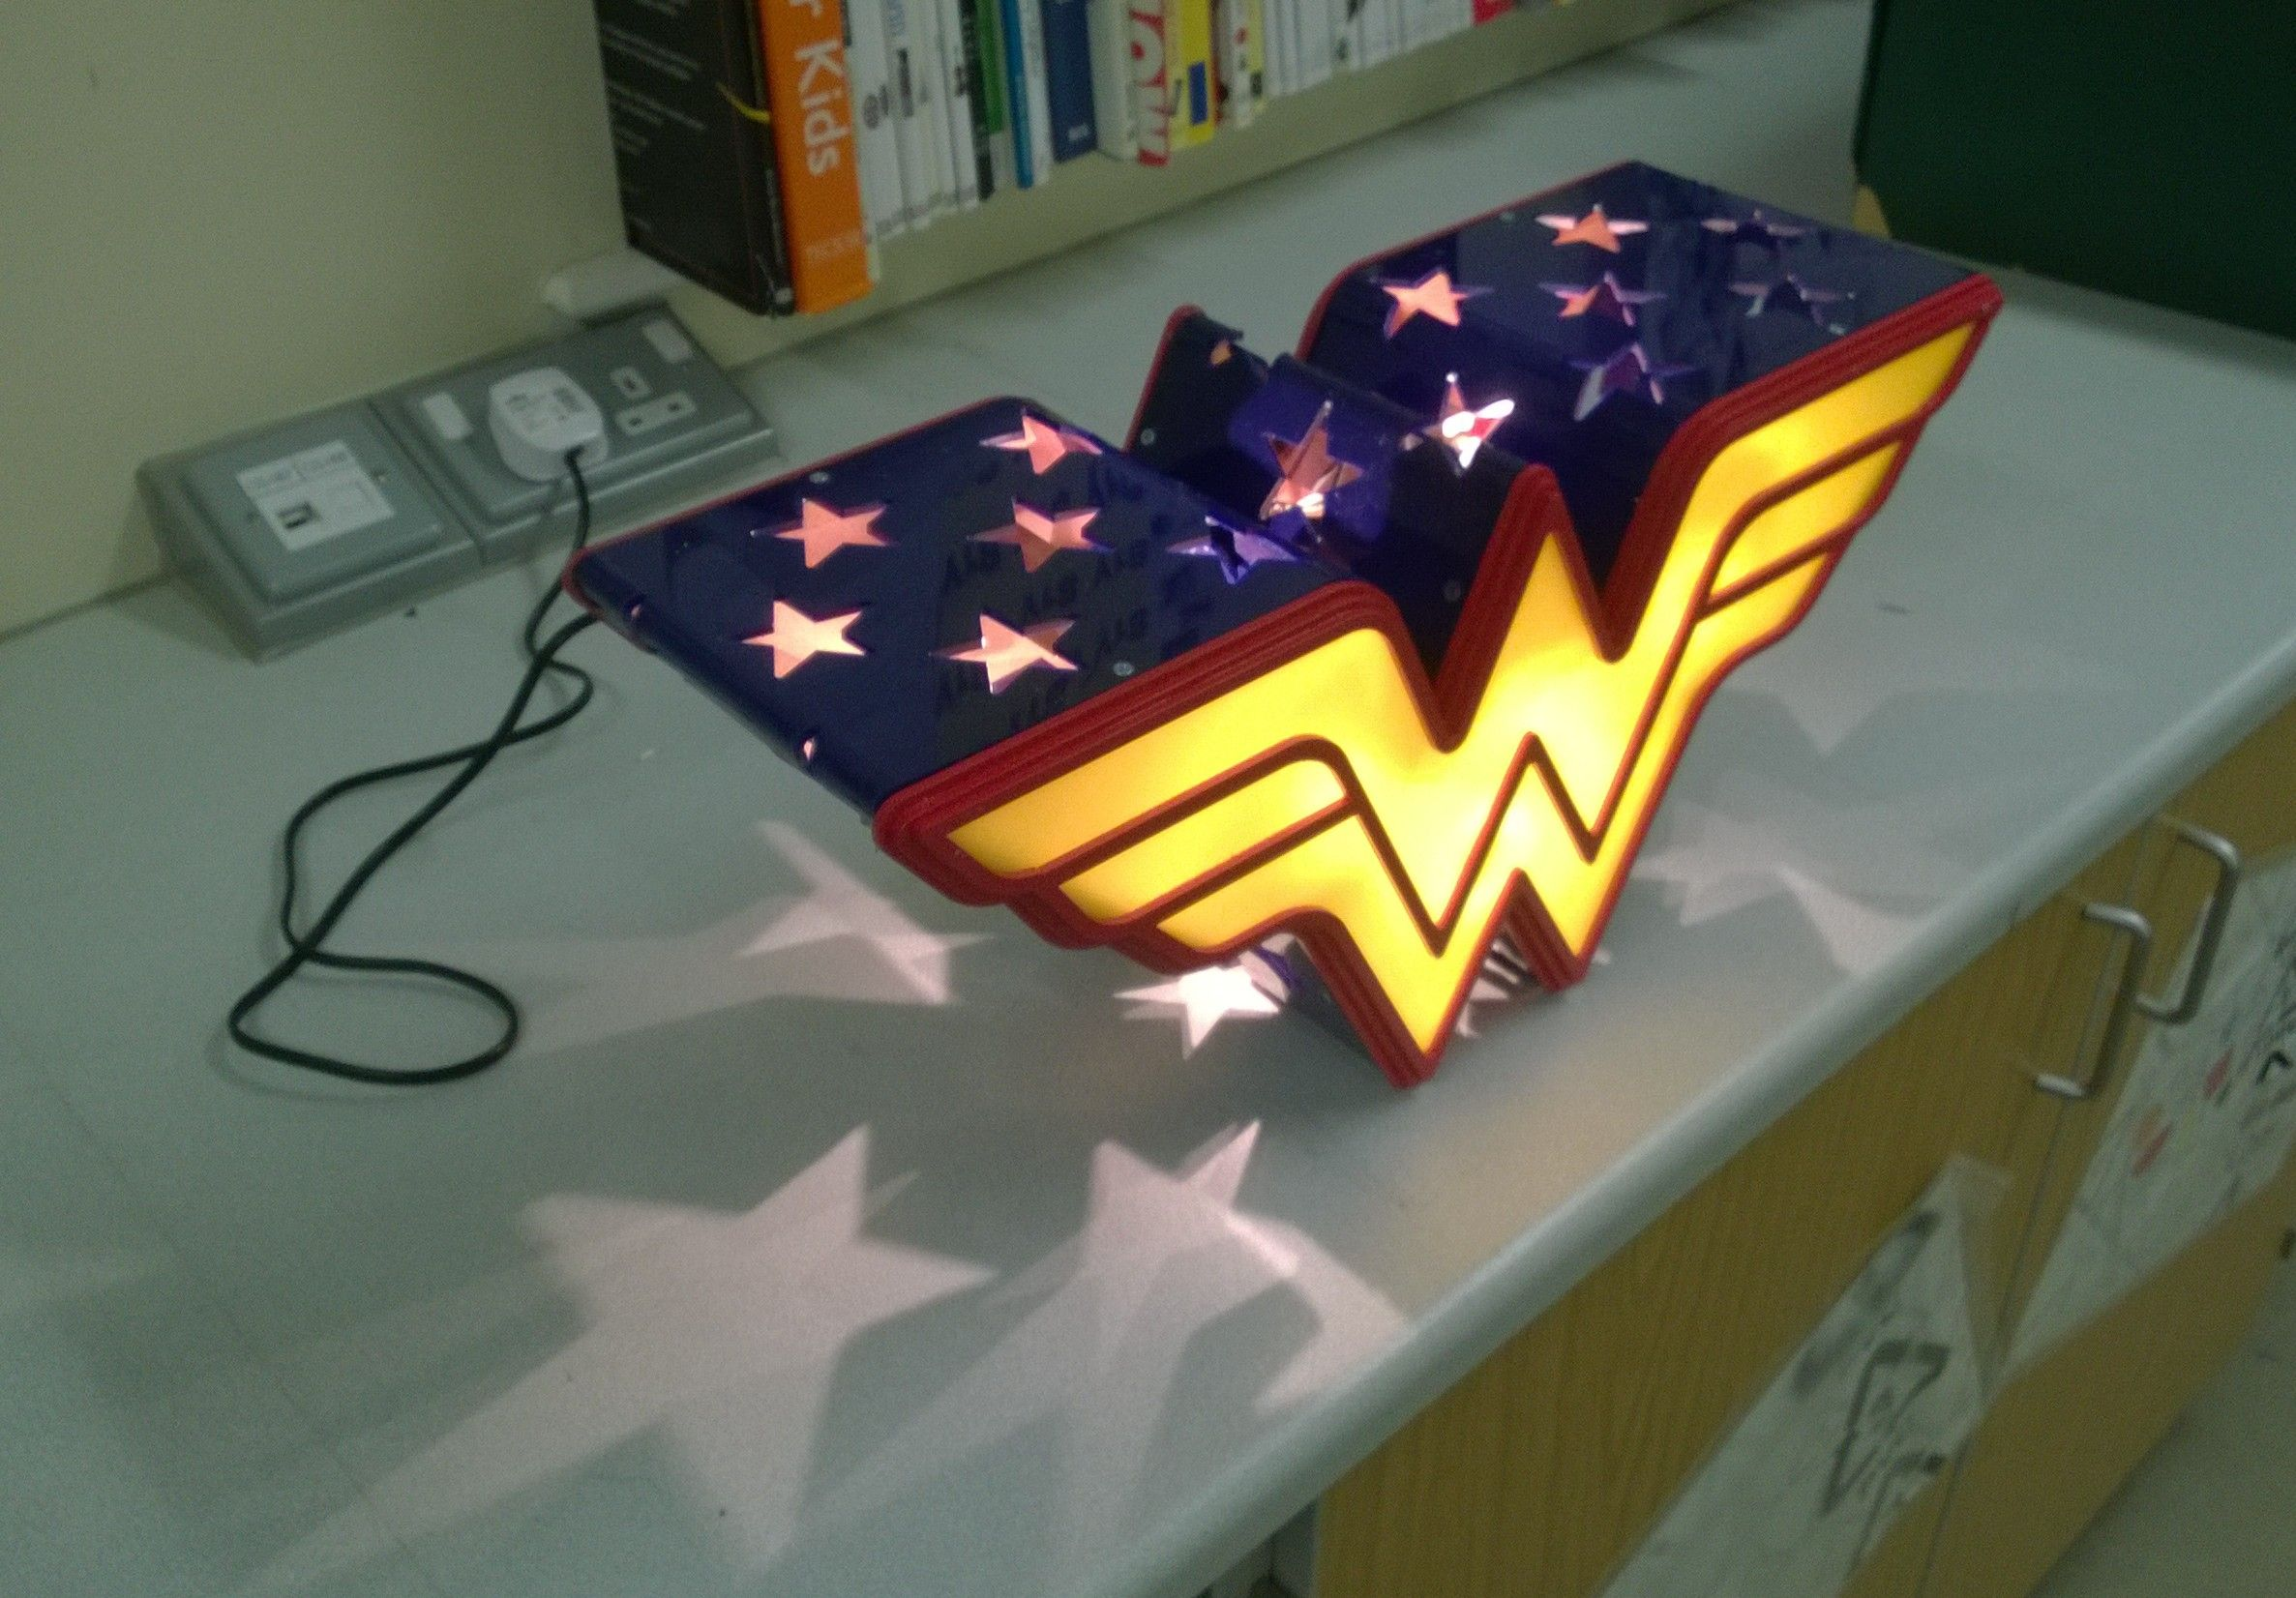 Marvel Wonder Woman Light Lamp Home Decor That I Love